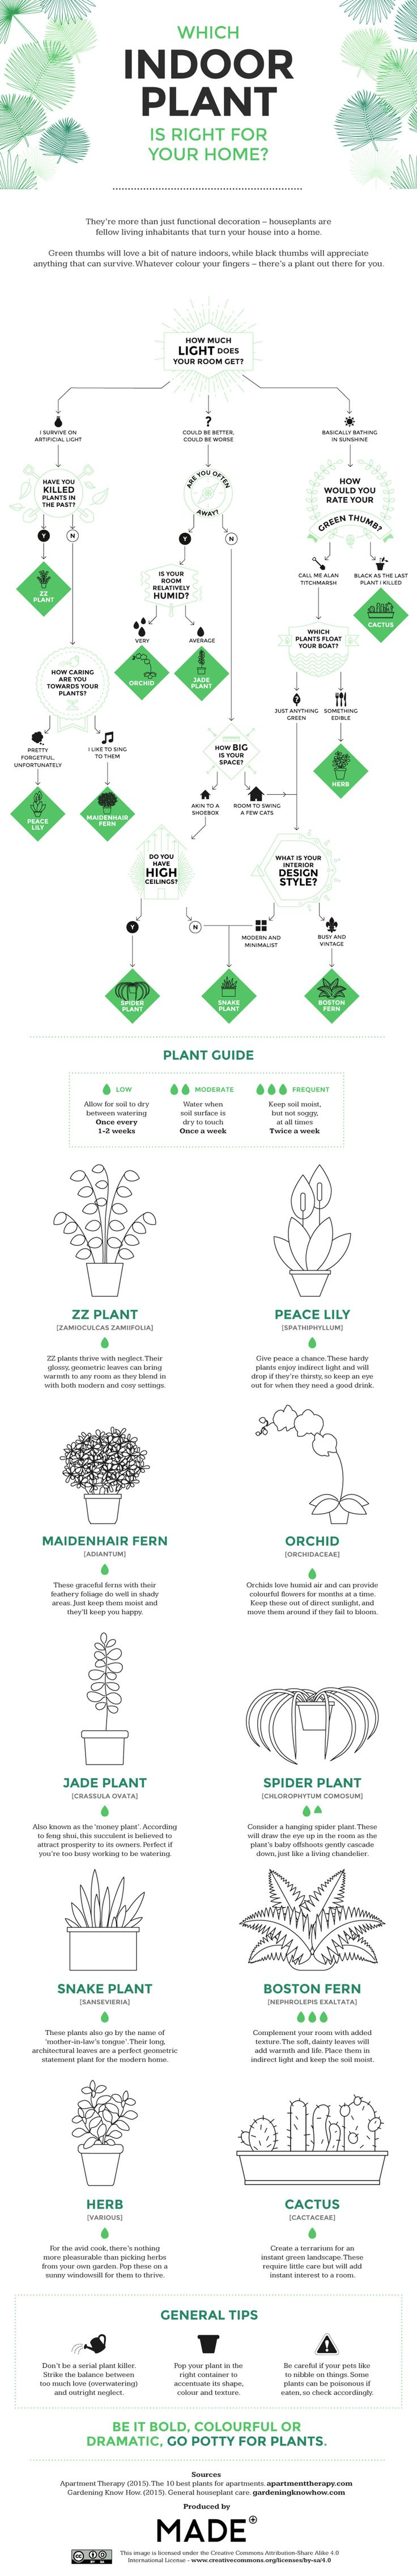 25 best peace lily ideas on pinterest best indoor plants which types of houseplants are best for your home flowchart peace lilyorchid flowersorchidsplant dhlflorist Gallery